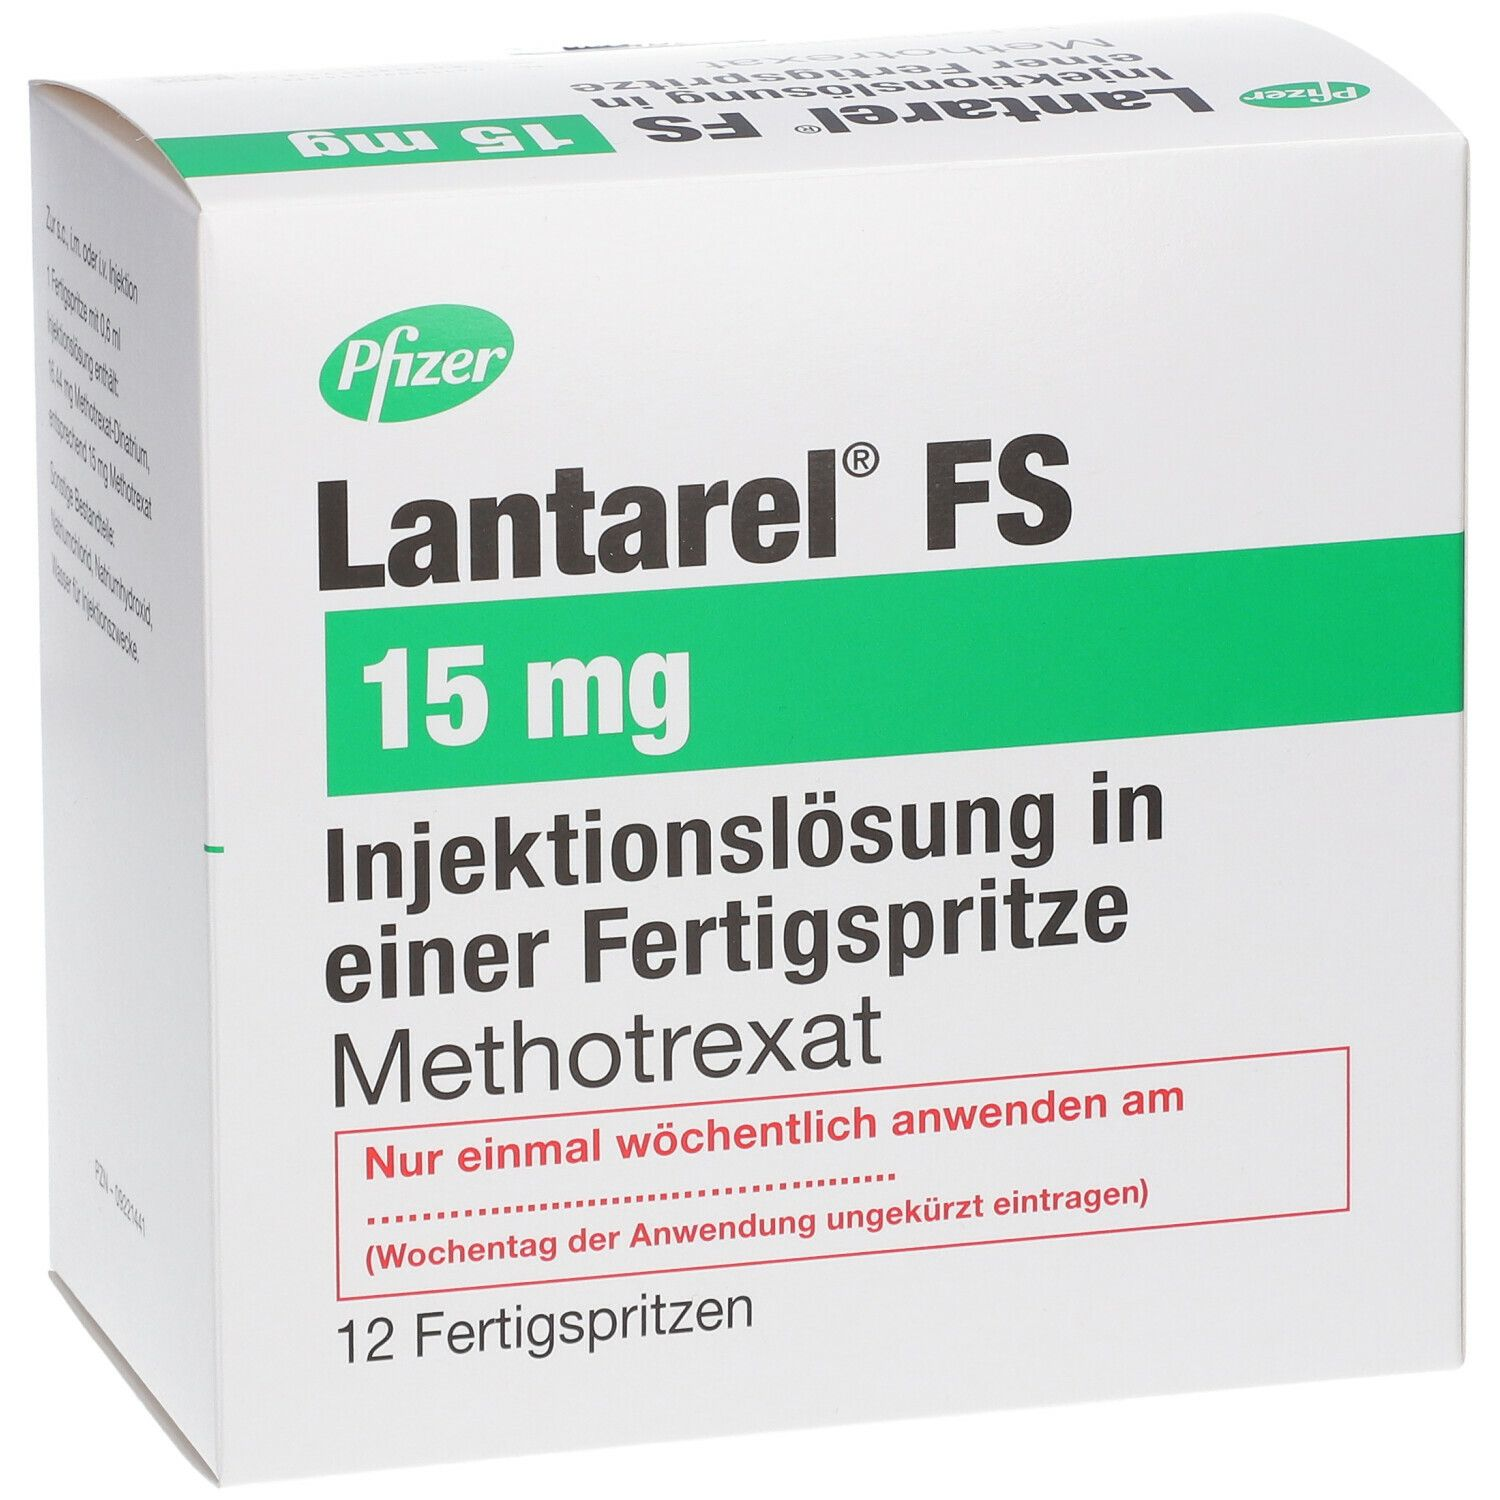 LANTAREL FS 15 mg 25 mg/ml